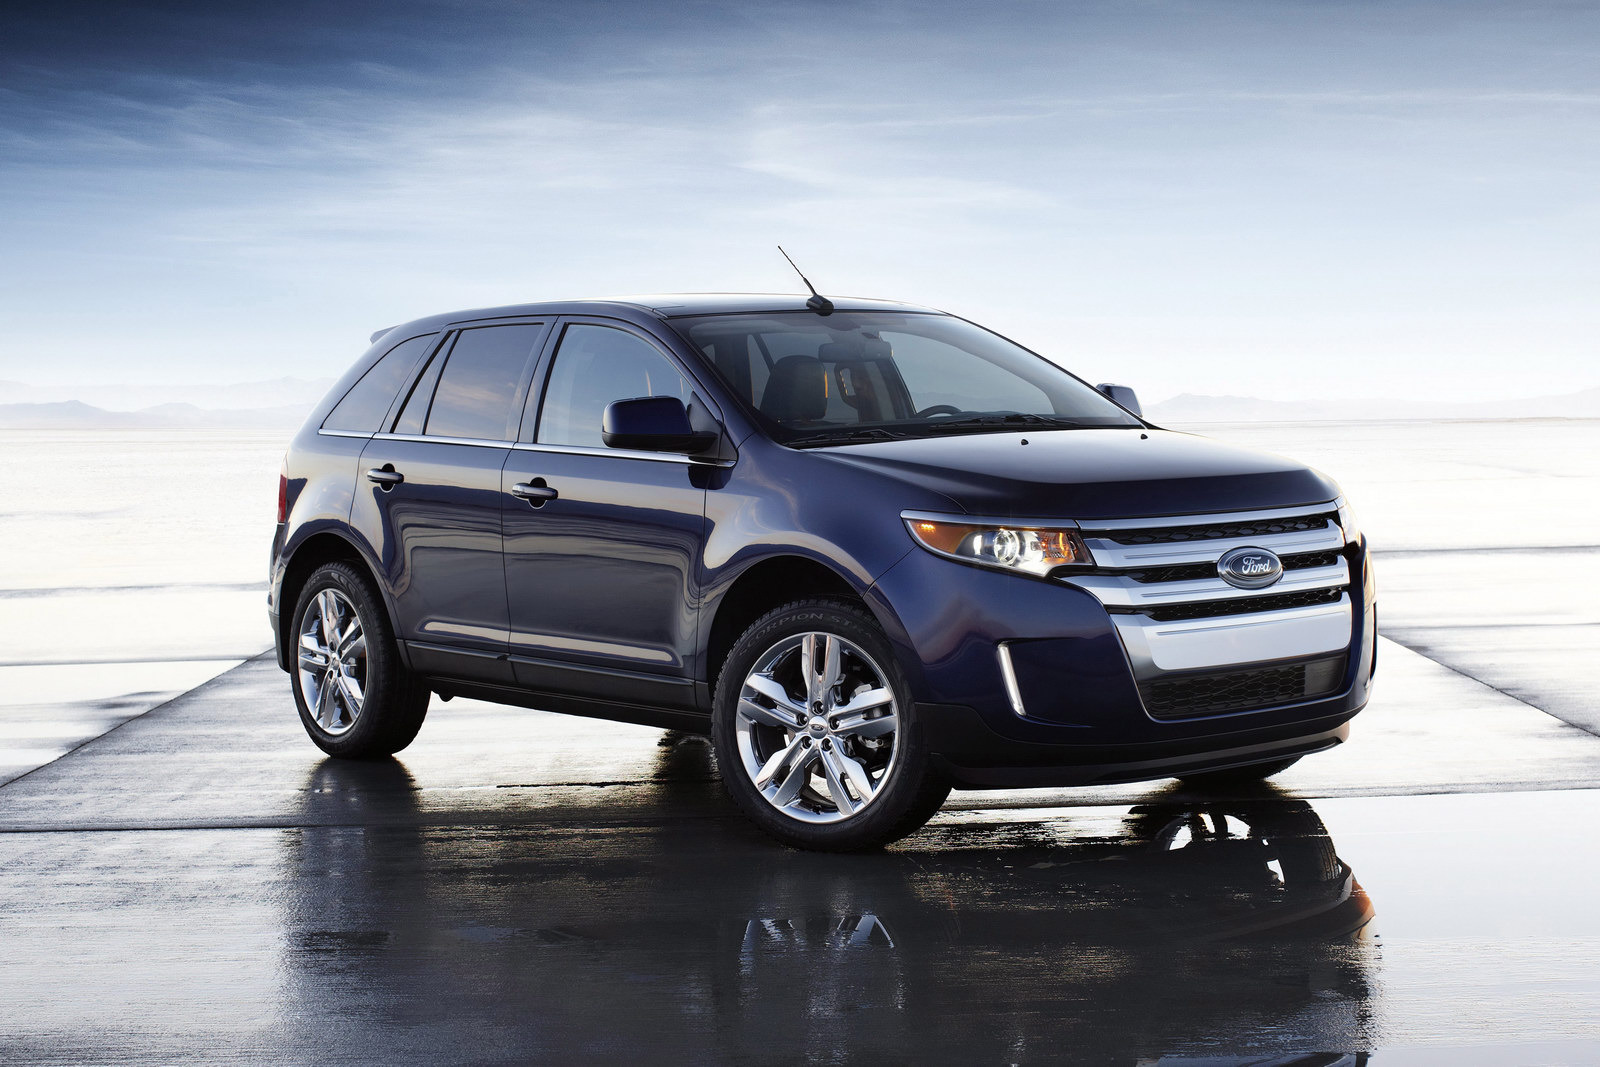 2012 Ford Edge Ecoboost powered 2012 Ford Edge delivers up to 30 MPG